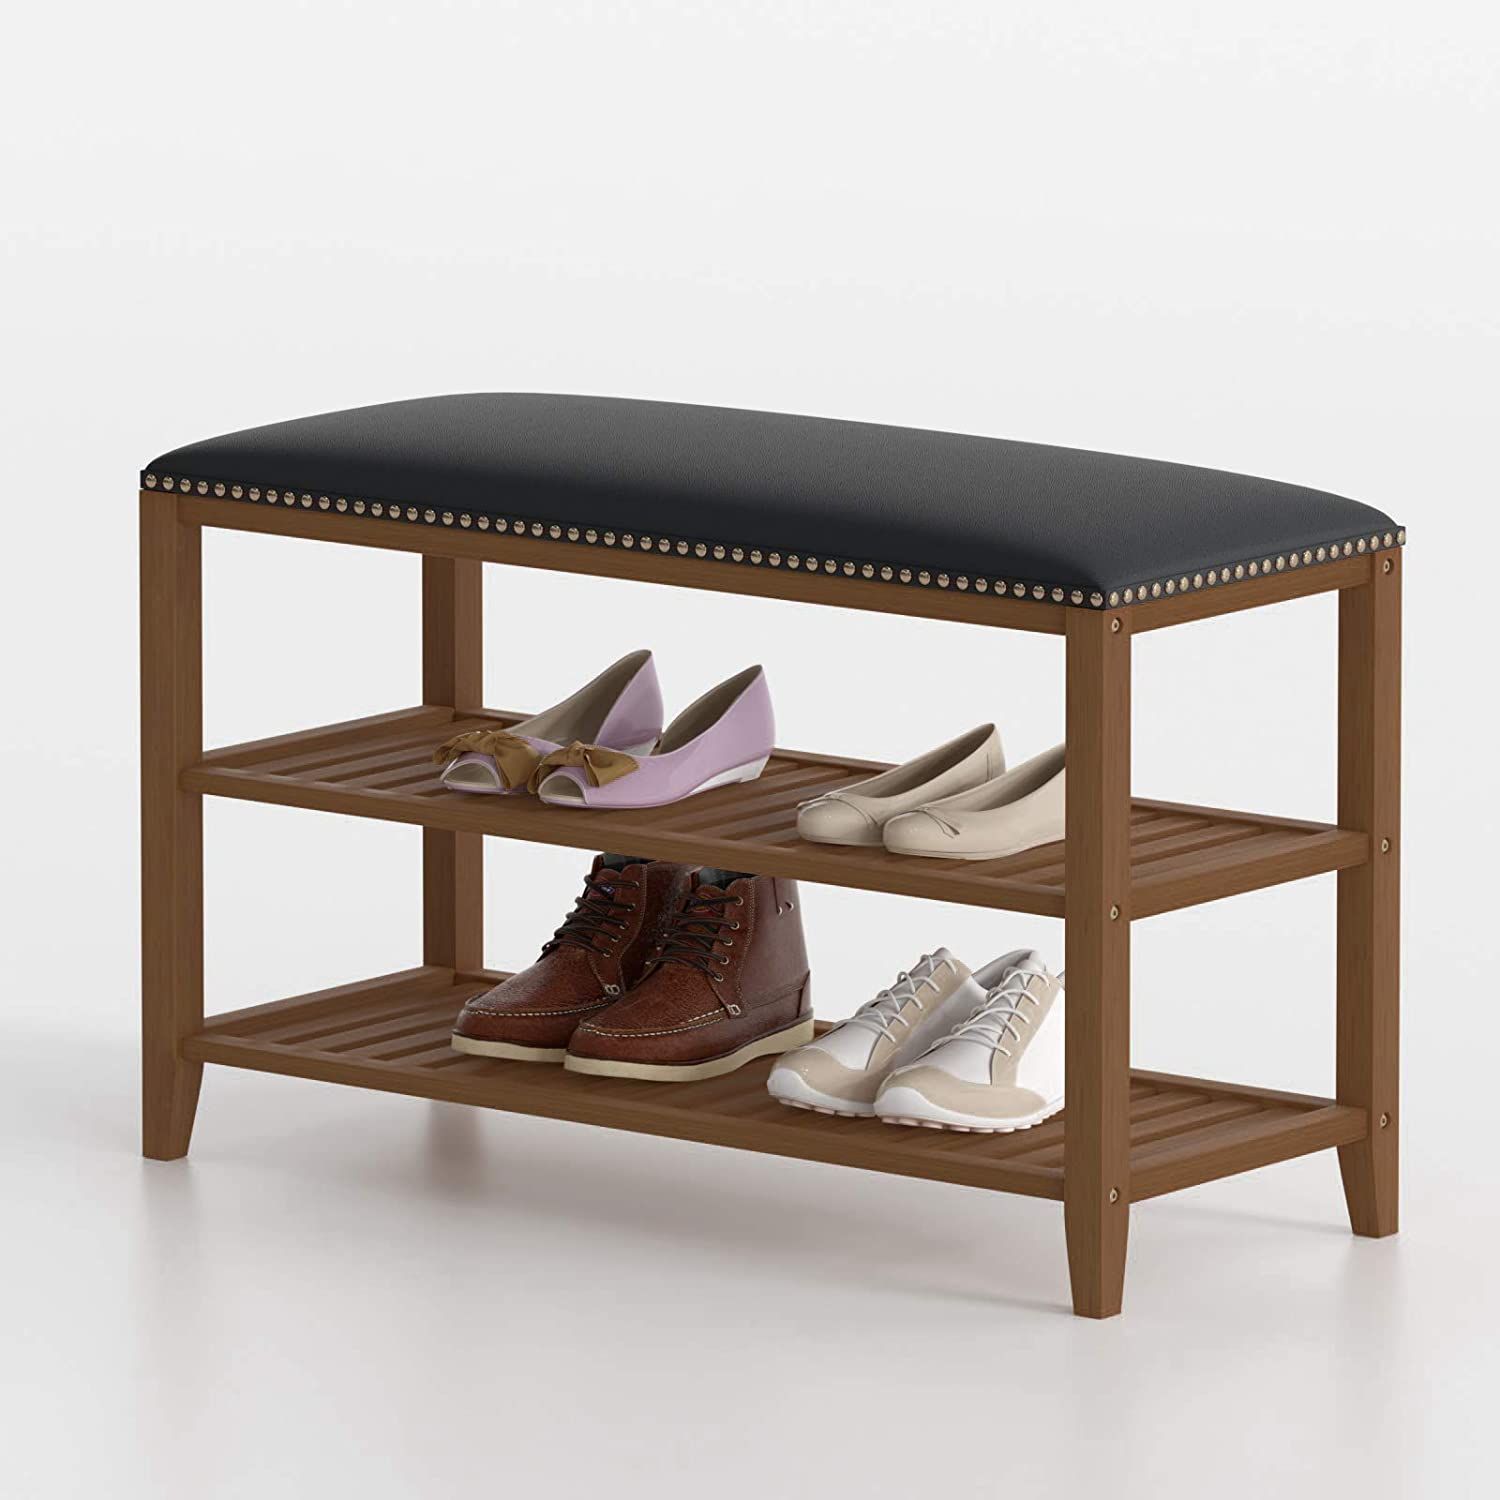 SeiriOne Shoe Rack Bench, 3-Tier Bamboo Shoe Storage Organizer with Leather Seat, Idea for Entryway, Living Room and Corridor, 31.5'' L x 11.41'' W x 20'' H